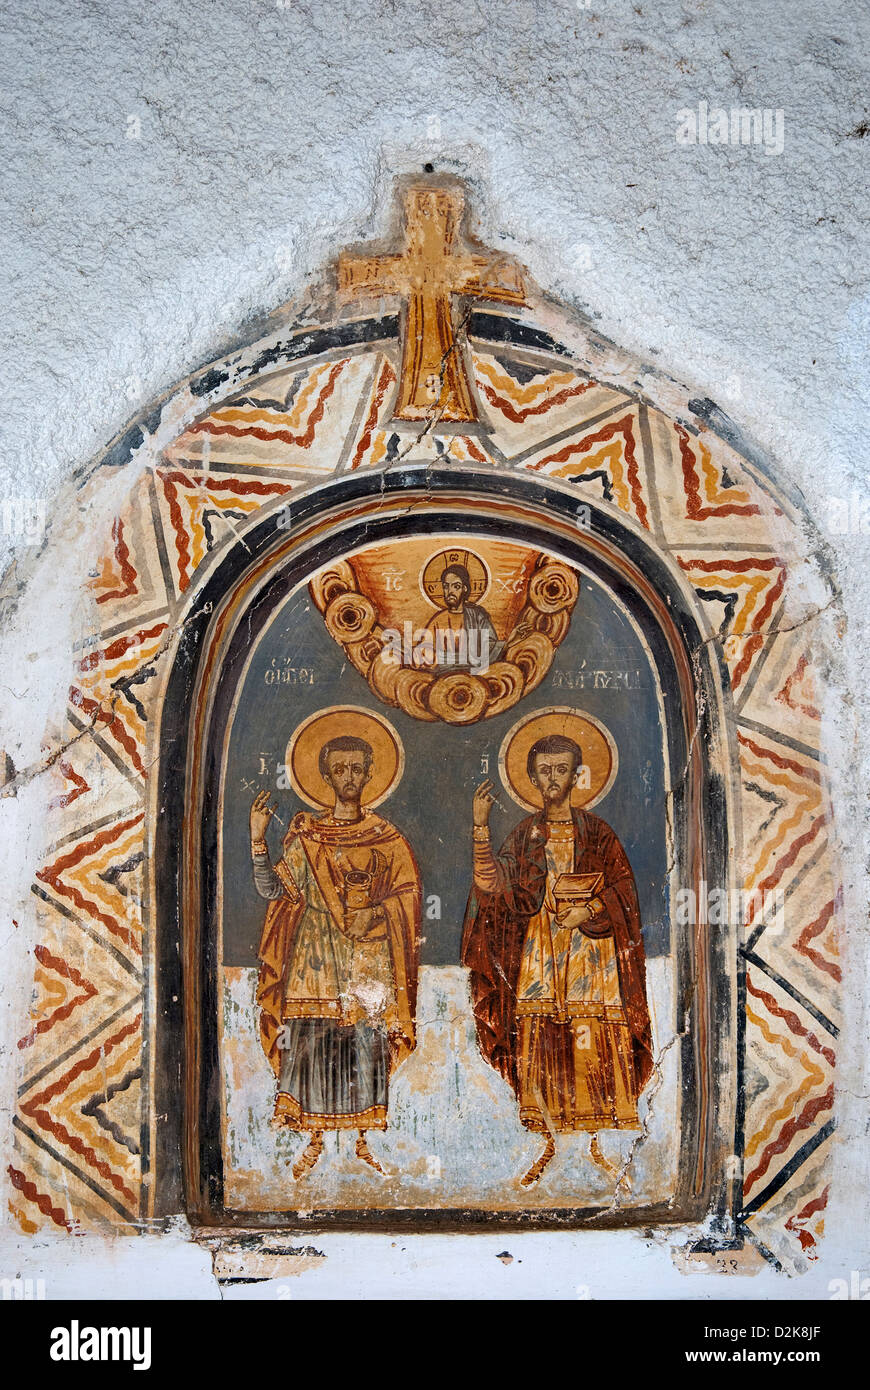 Icon in the wall of a Greek orthodox chapel - Stock Image